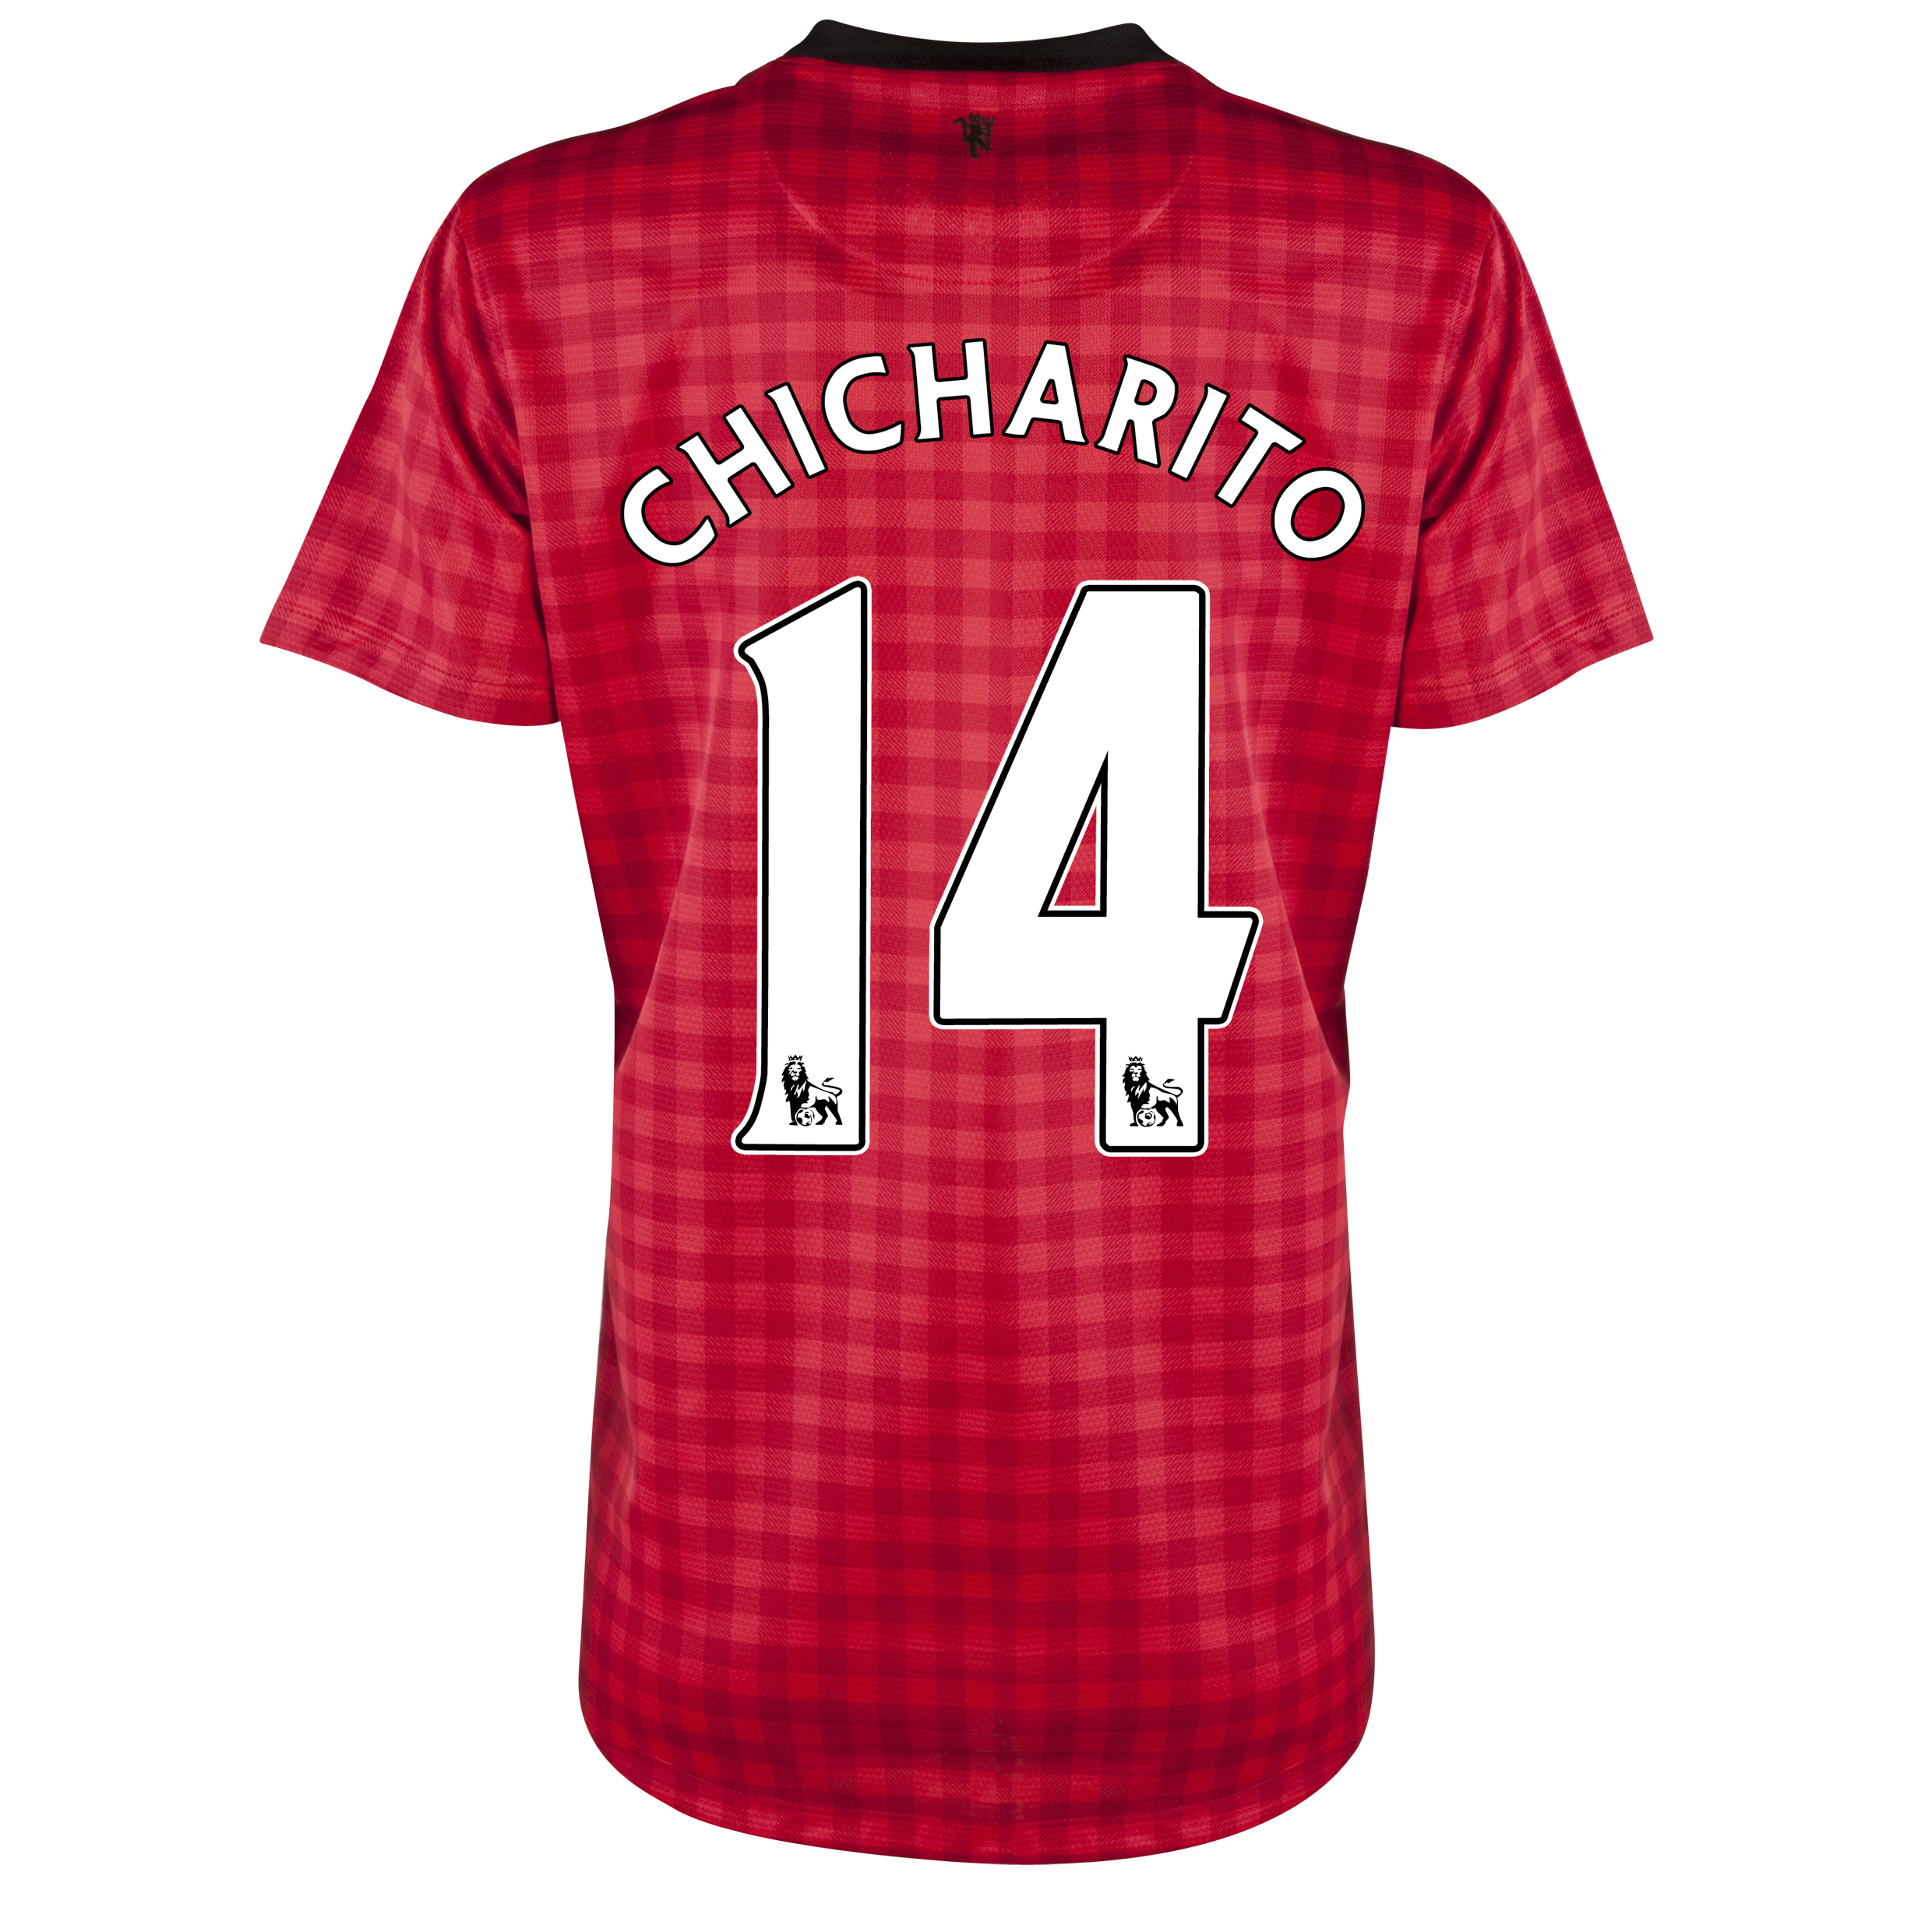 Manchester United Home Shirt 2012/13 - Womens with Chicharito 14 printing